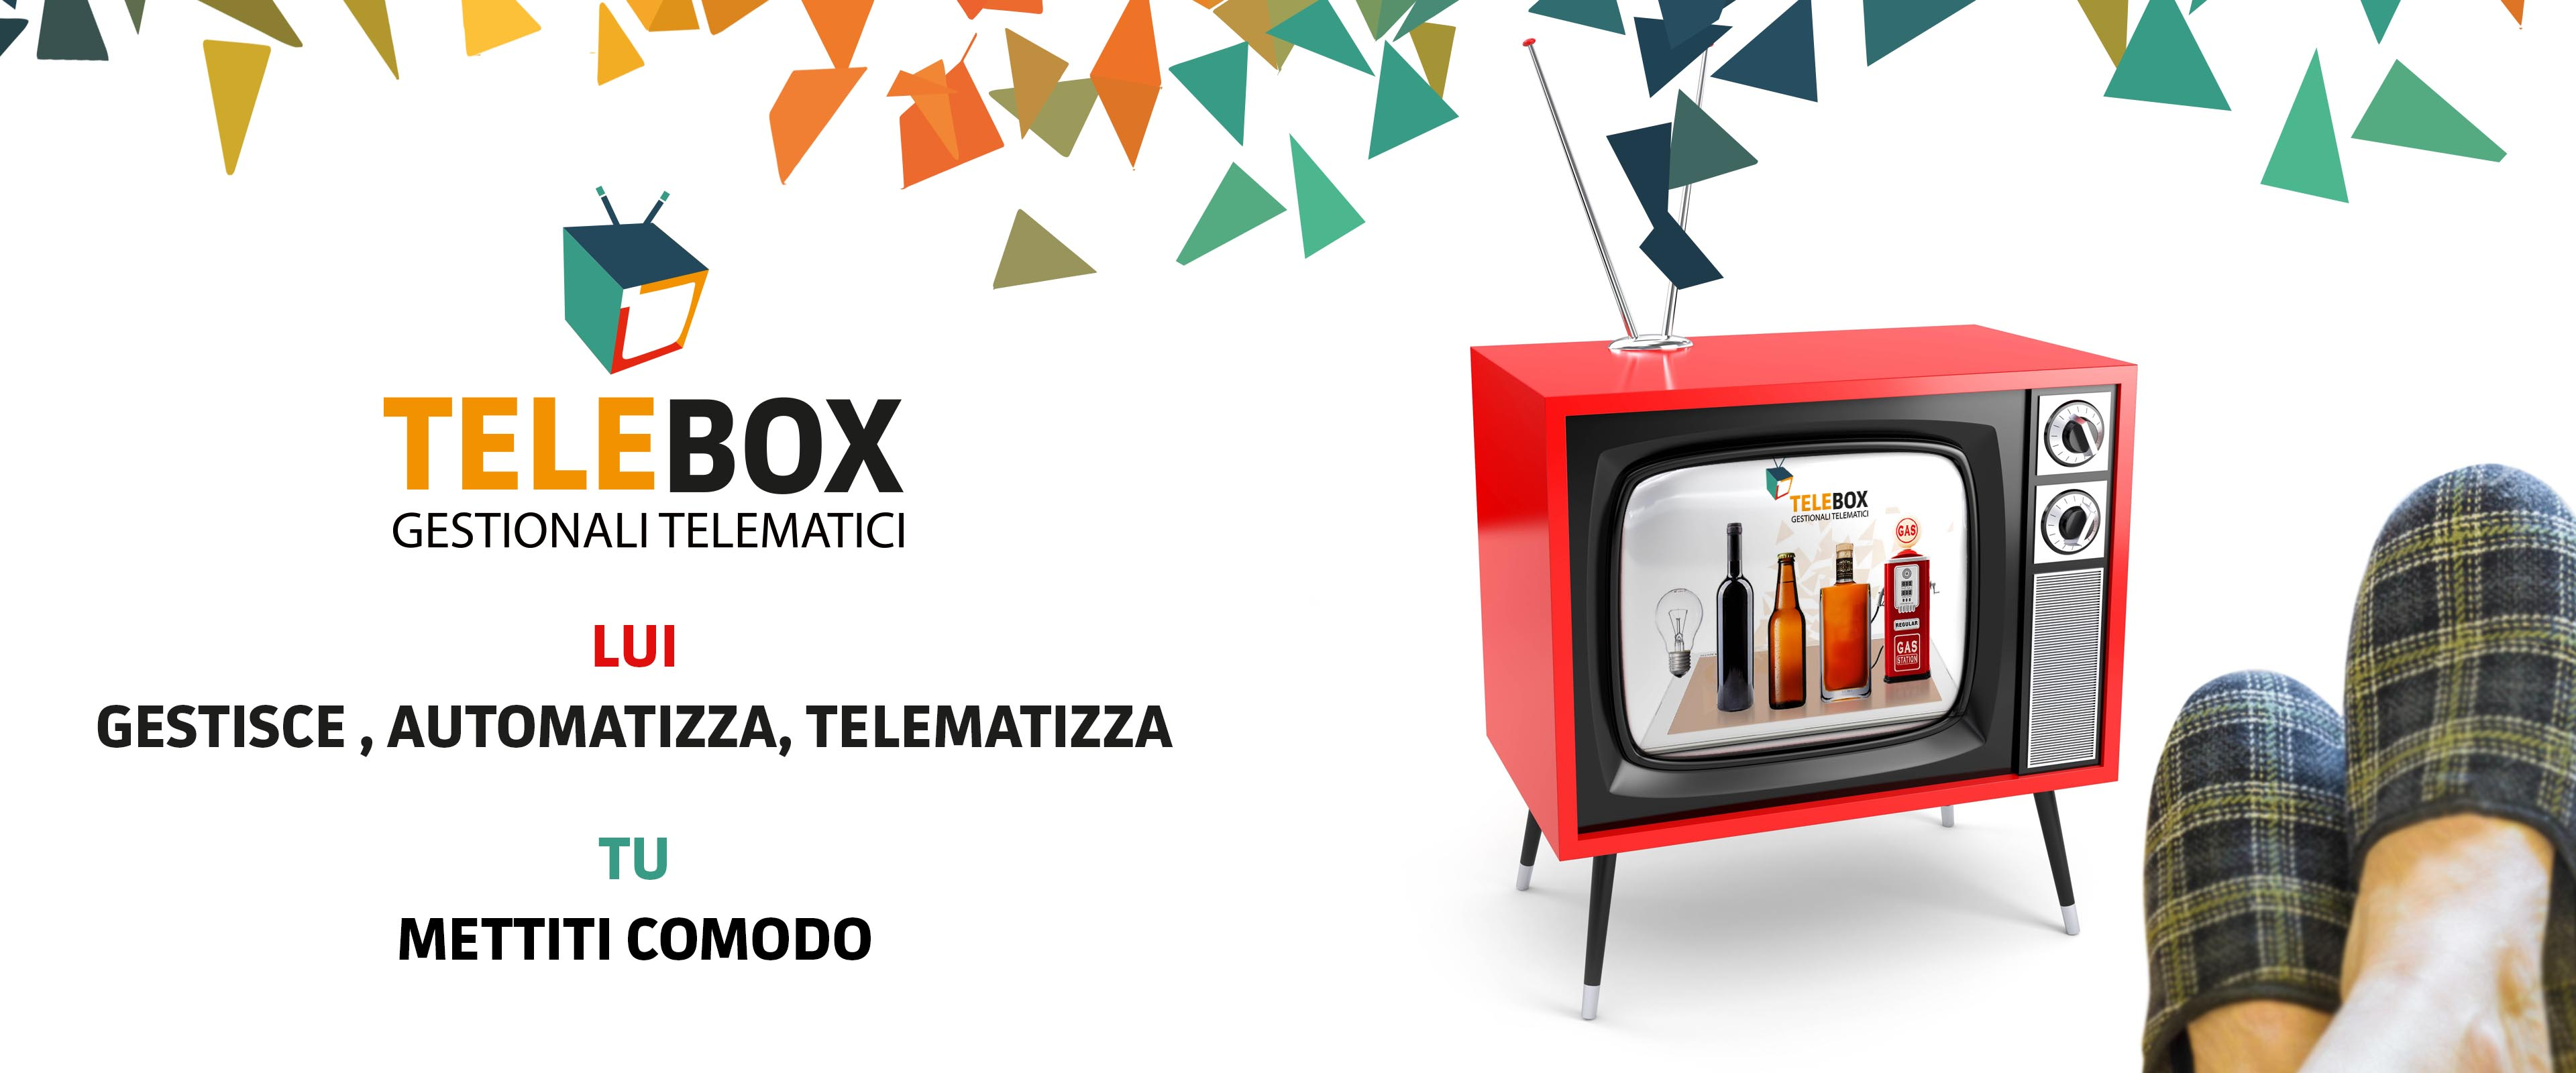 visual_telebox-1